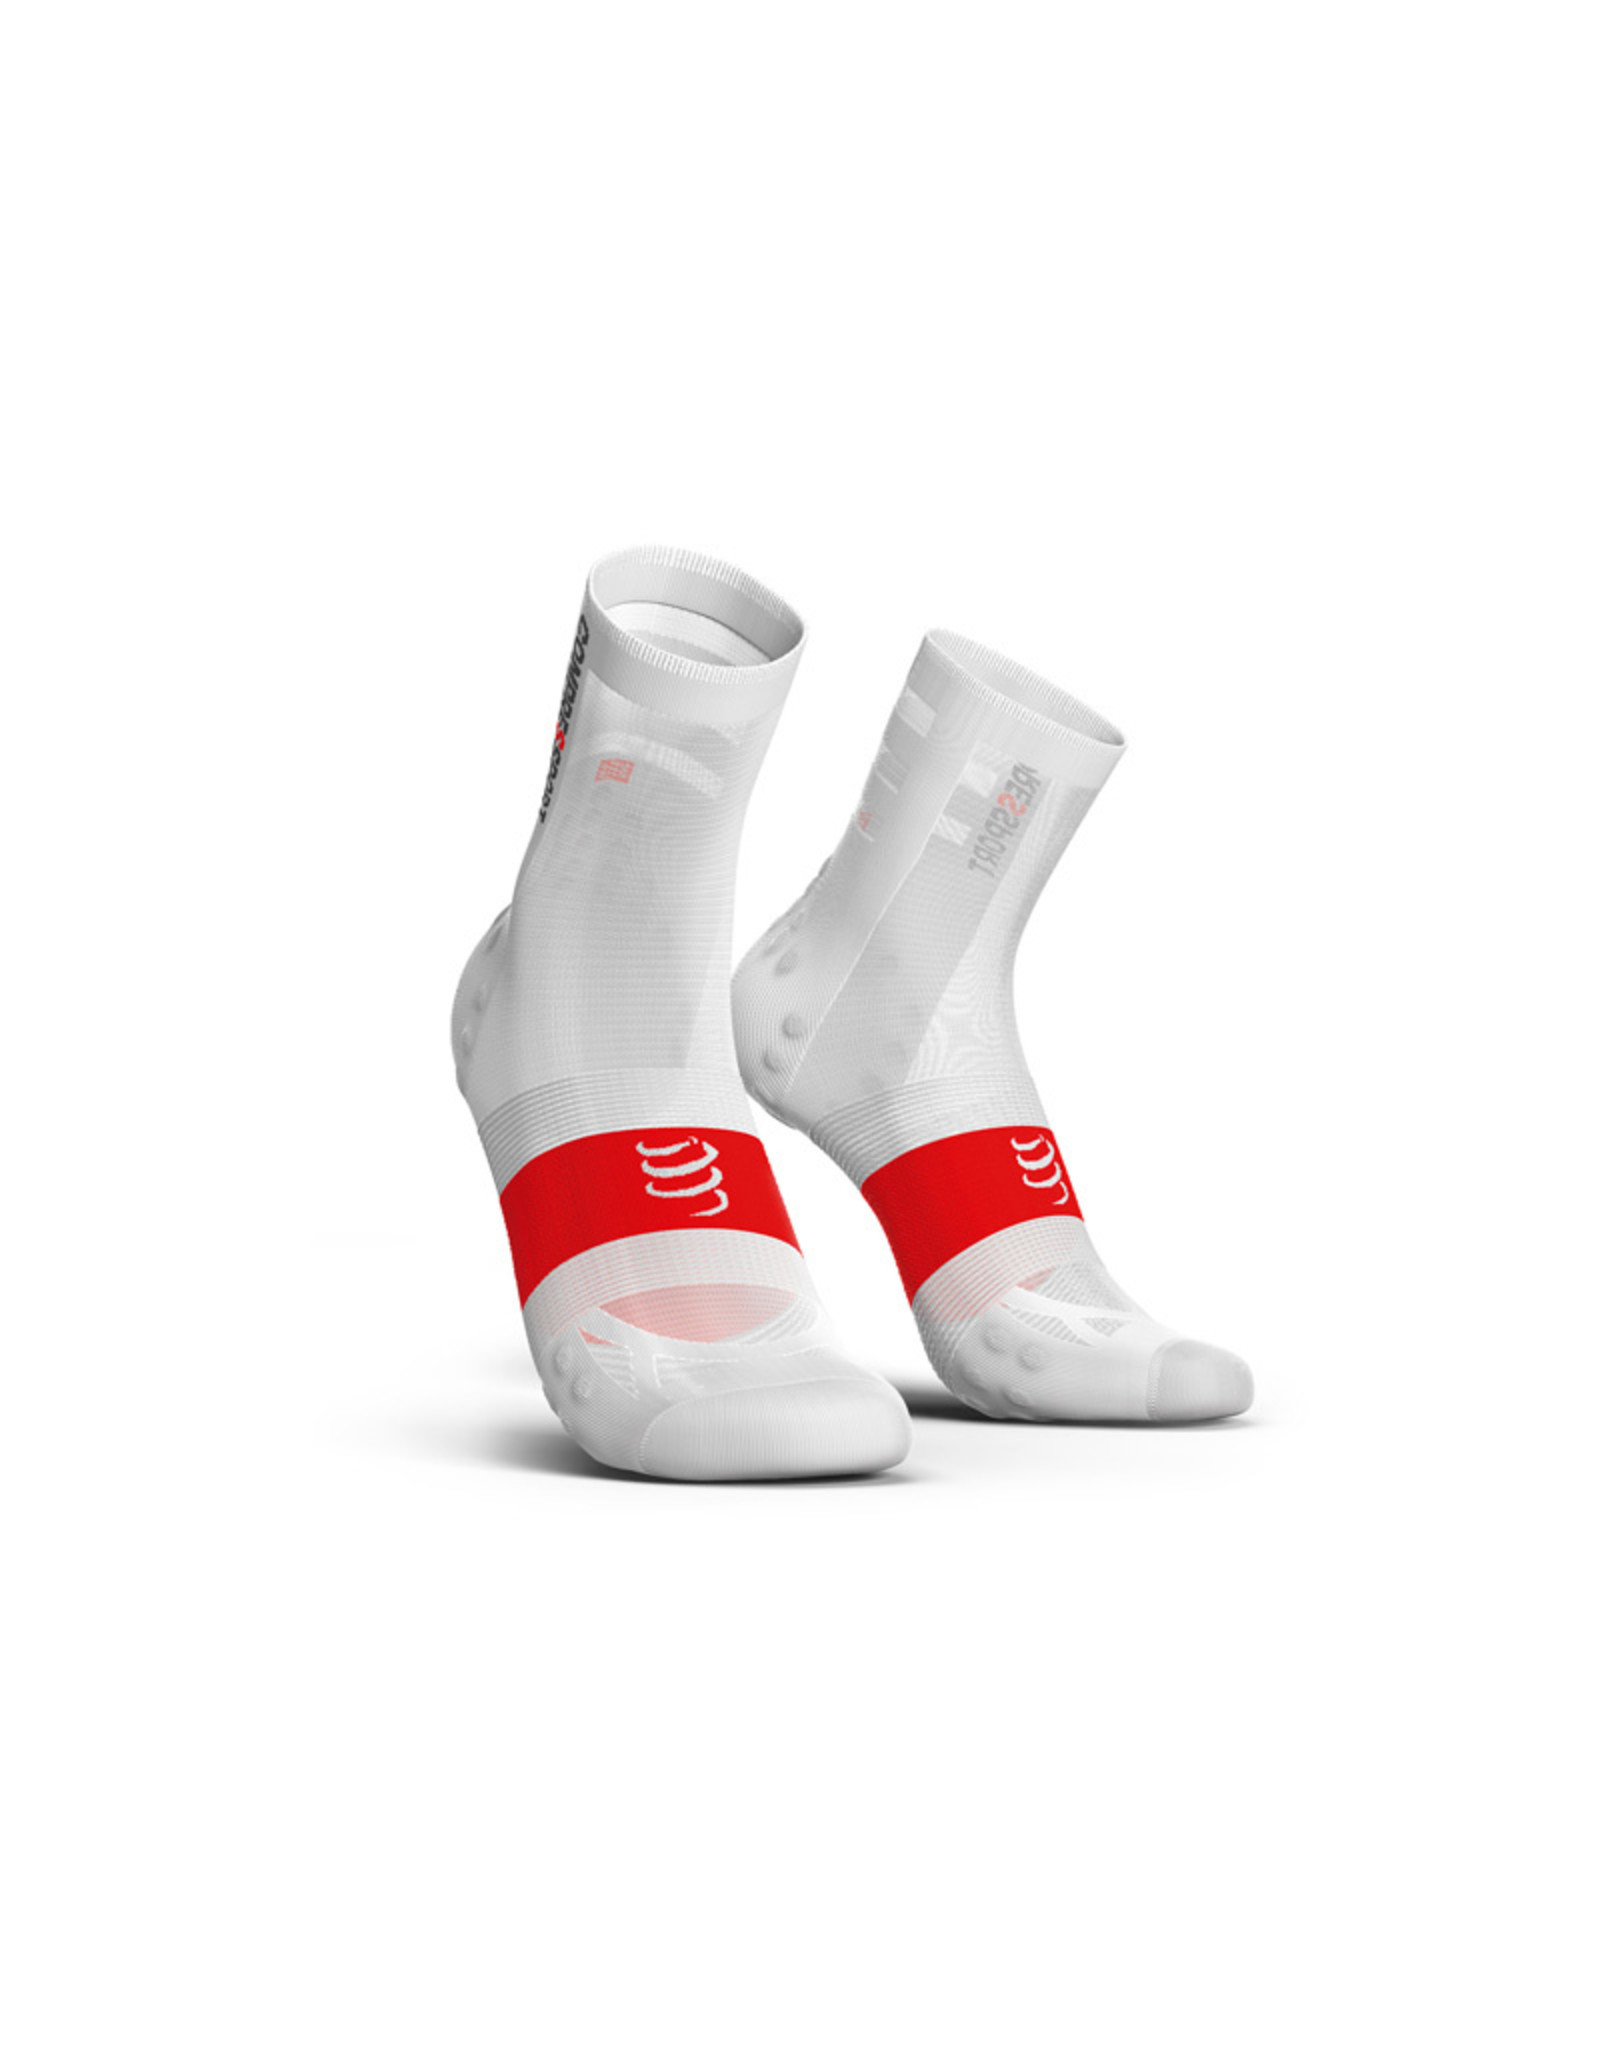 Compressport Pro Racing Socks V3.0 Ultralight Bike Chaussettes Bicyclette - Blanc